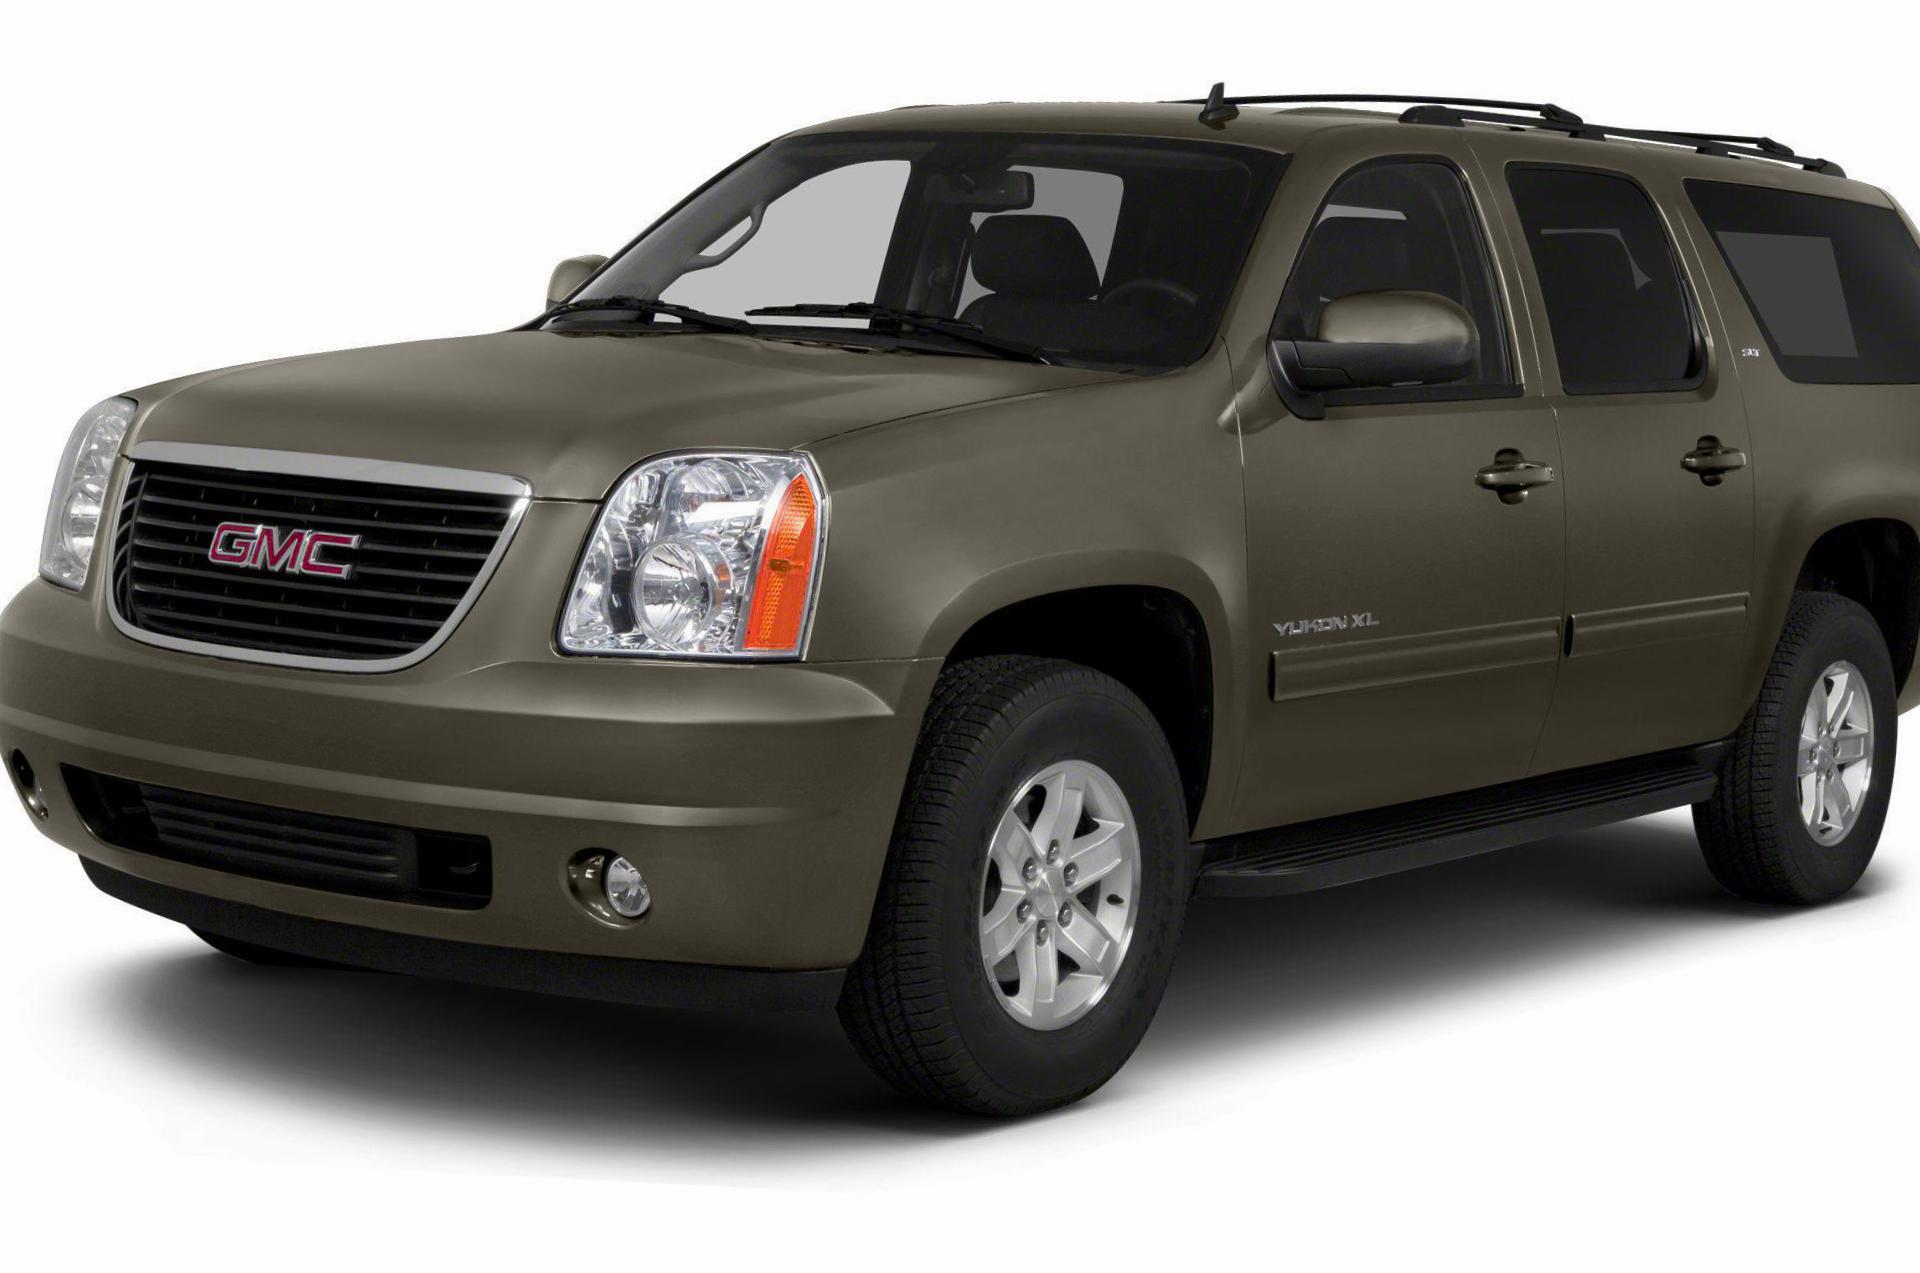 GMC Yukon sale coupe